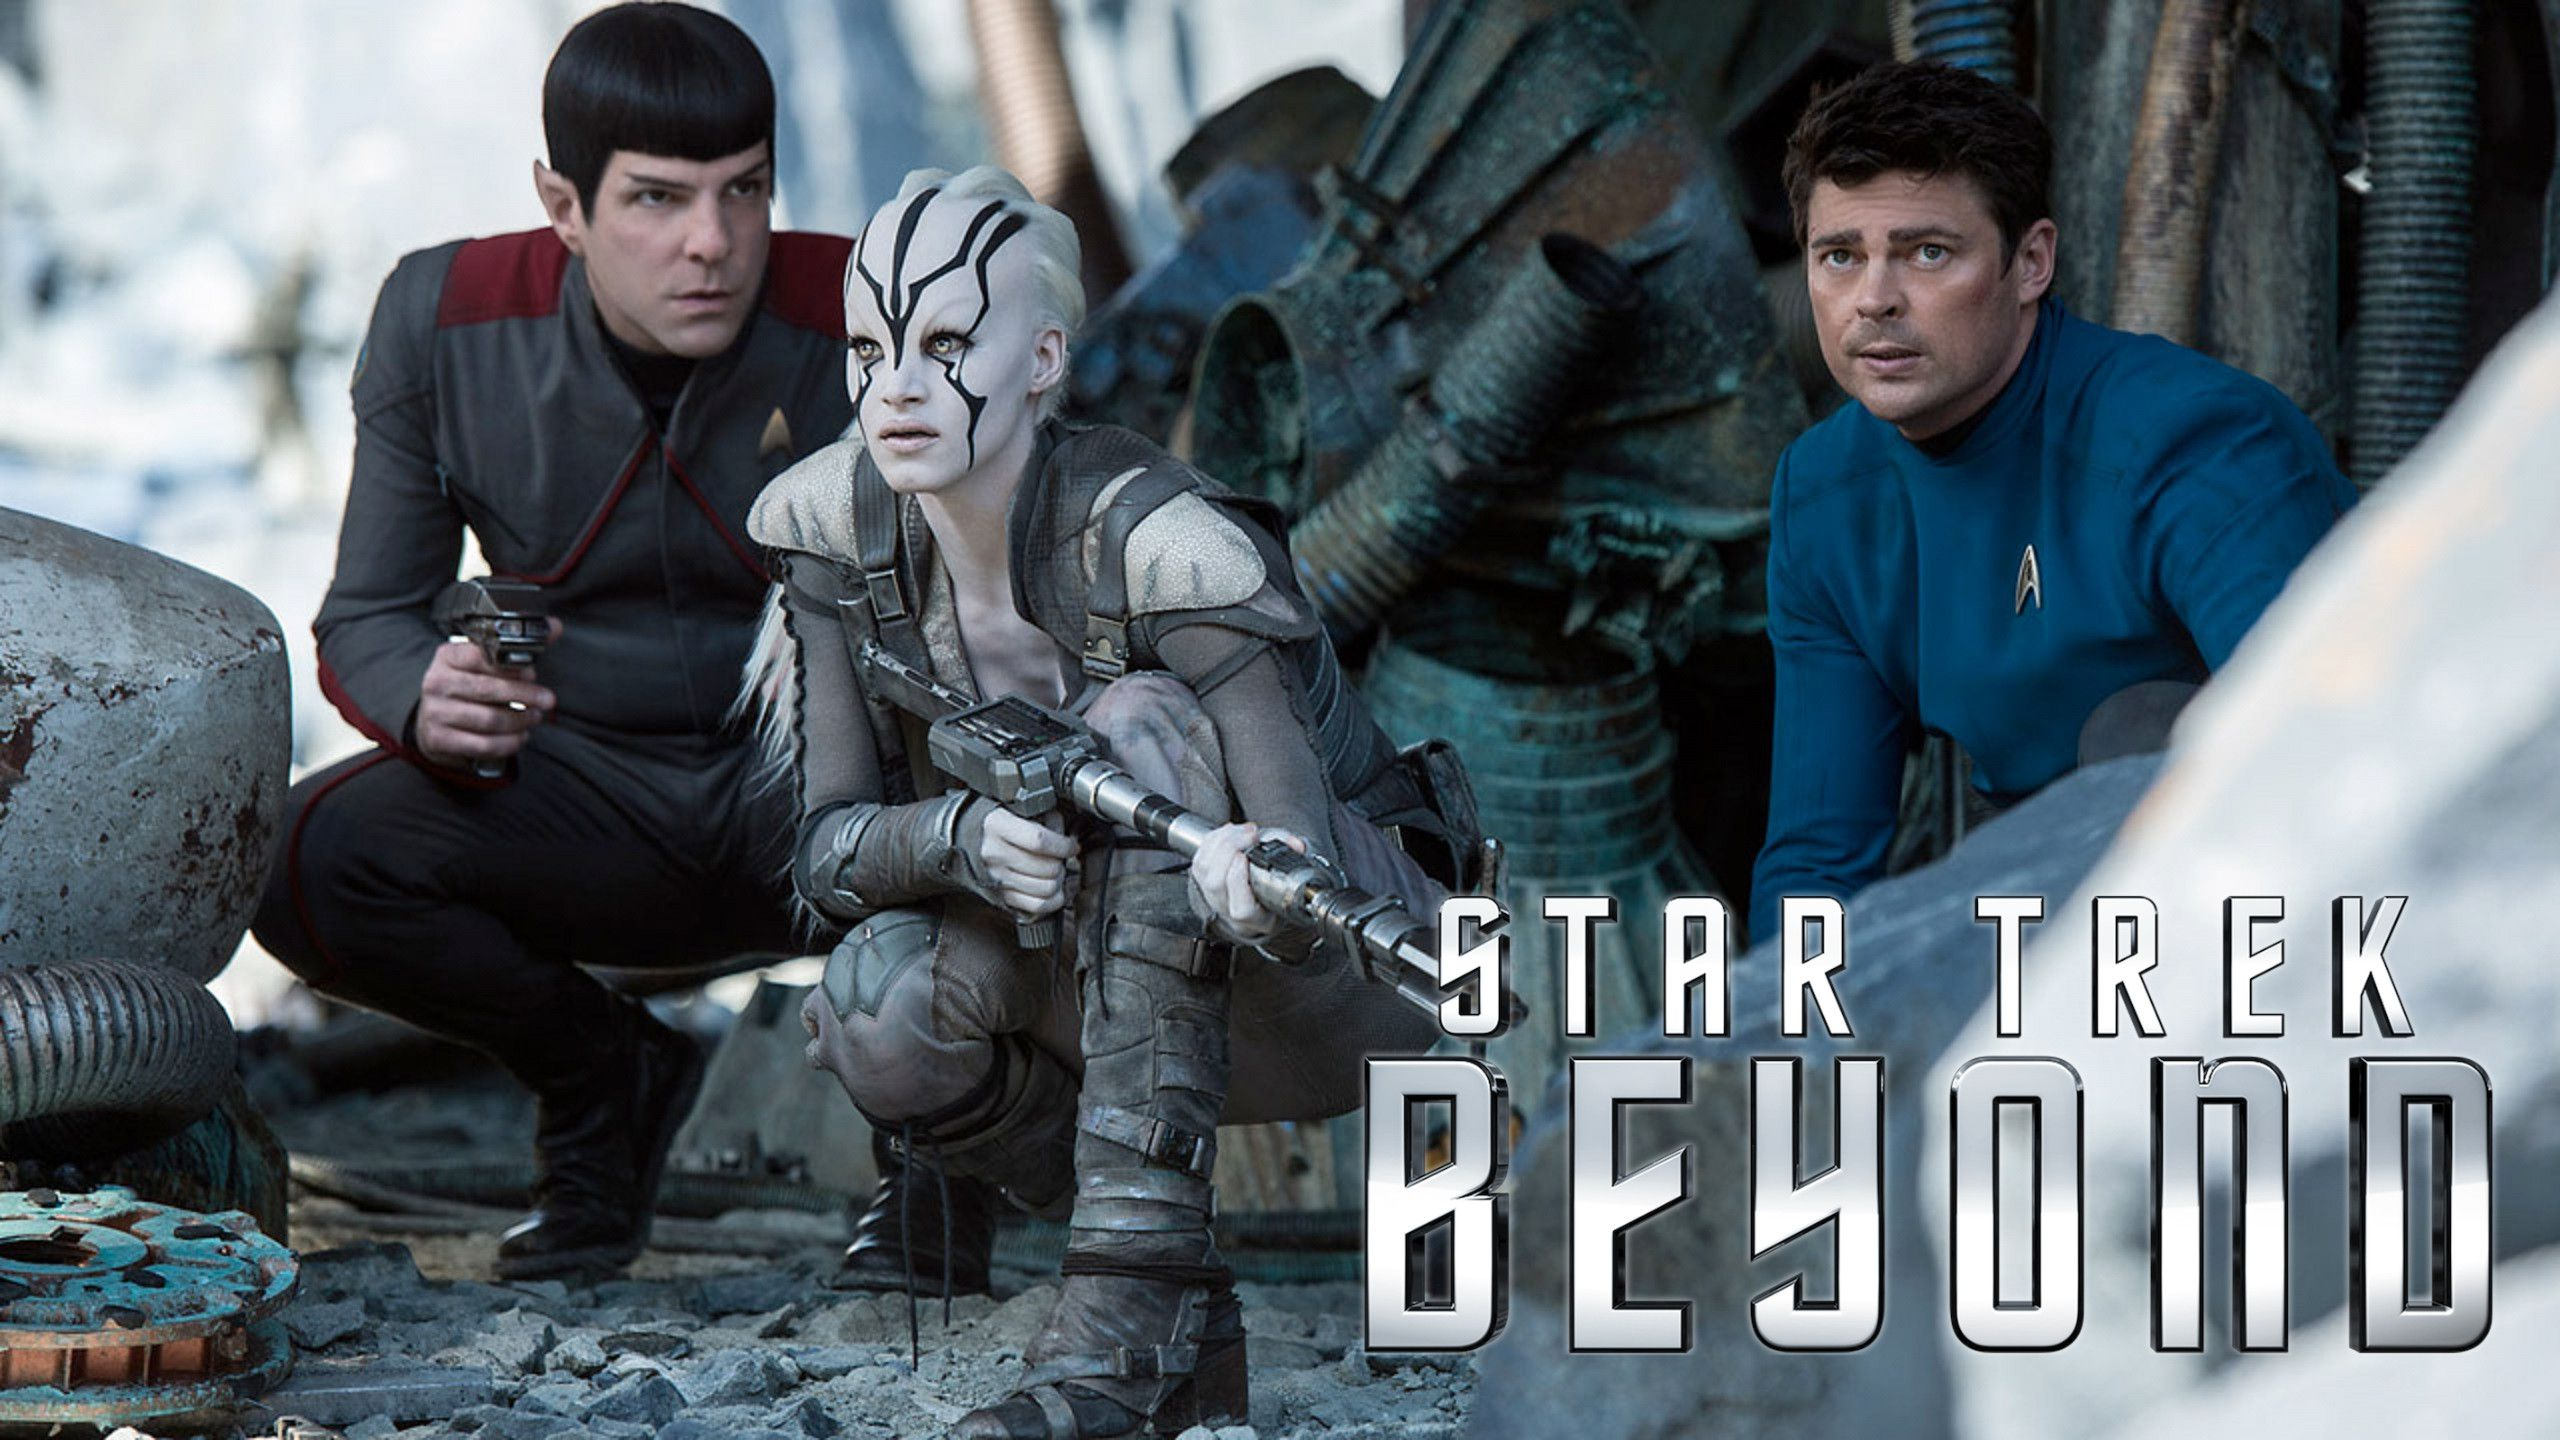 Star Trek 13 - Beyond (2016) banner battle